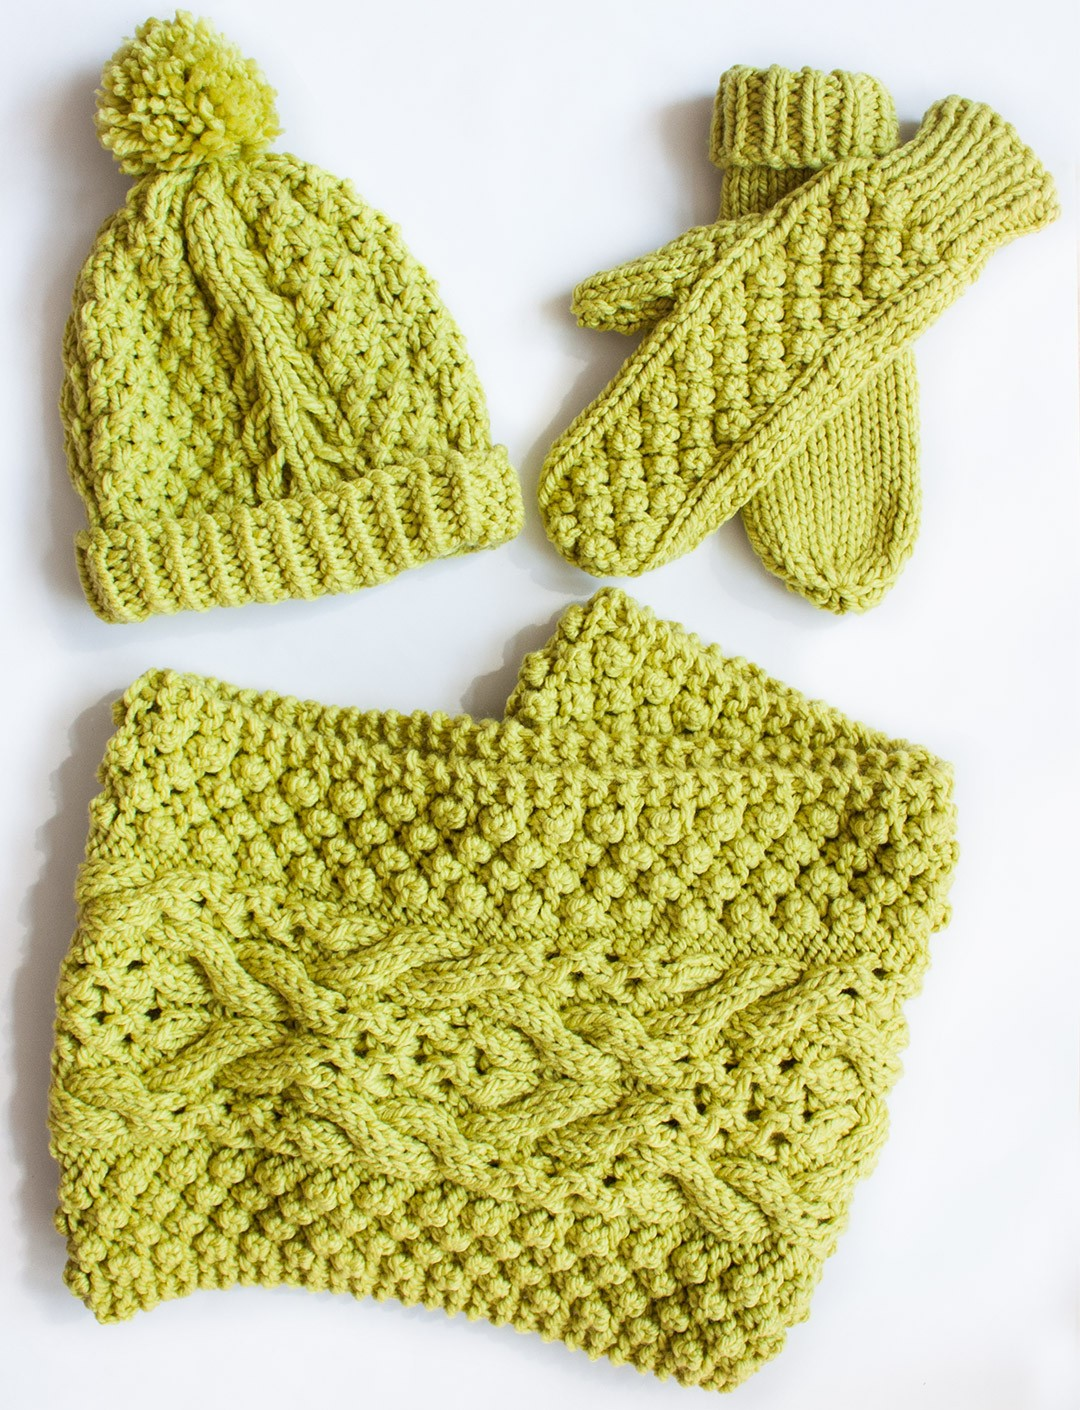 Bernat Knitting Patterns Free : Bernat Chill Chaser Set (Hat, Mittens, Cowl), Knit Pattern Yarnspirations